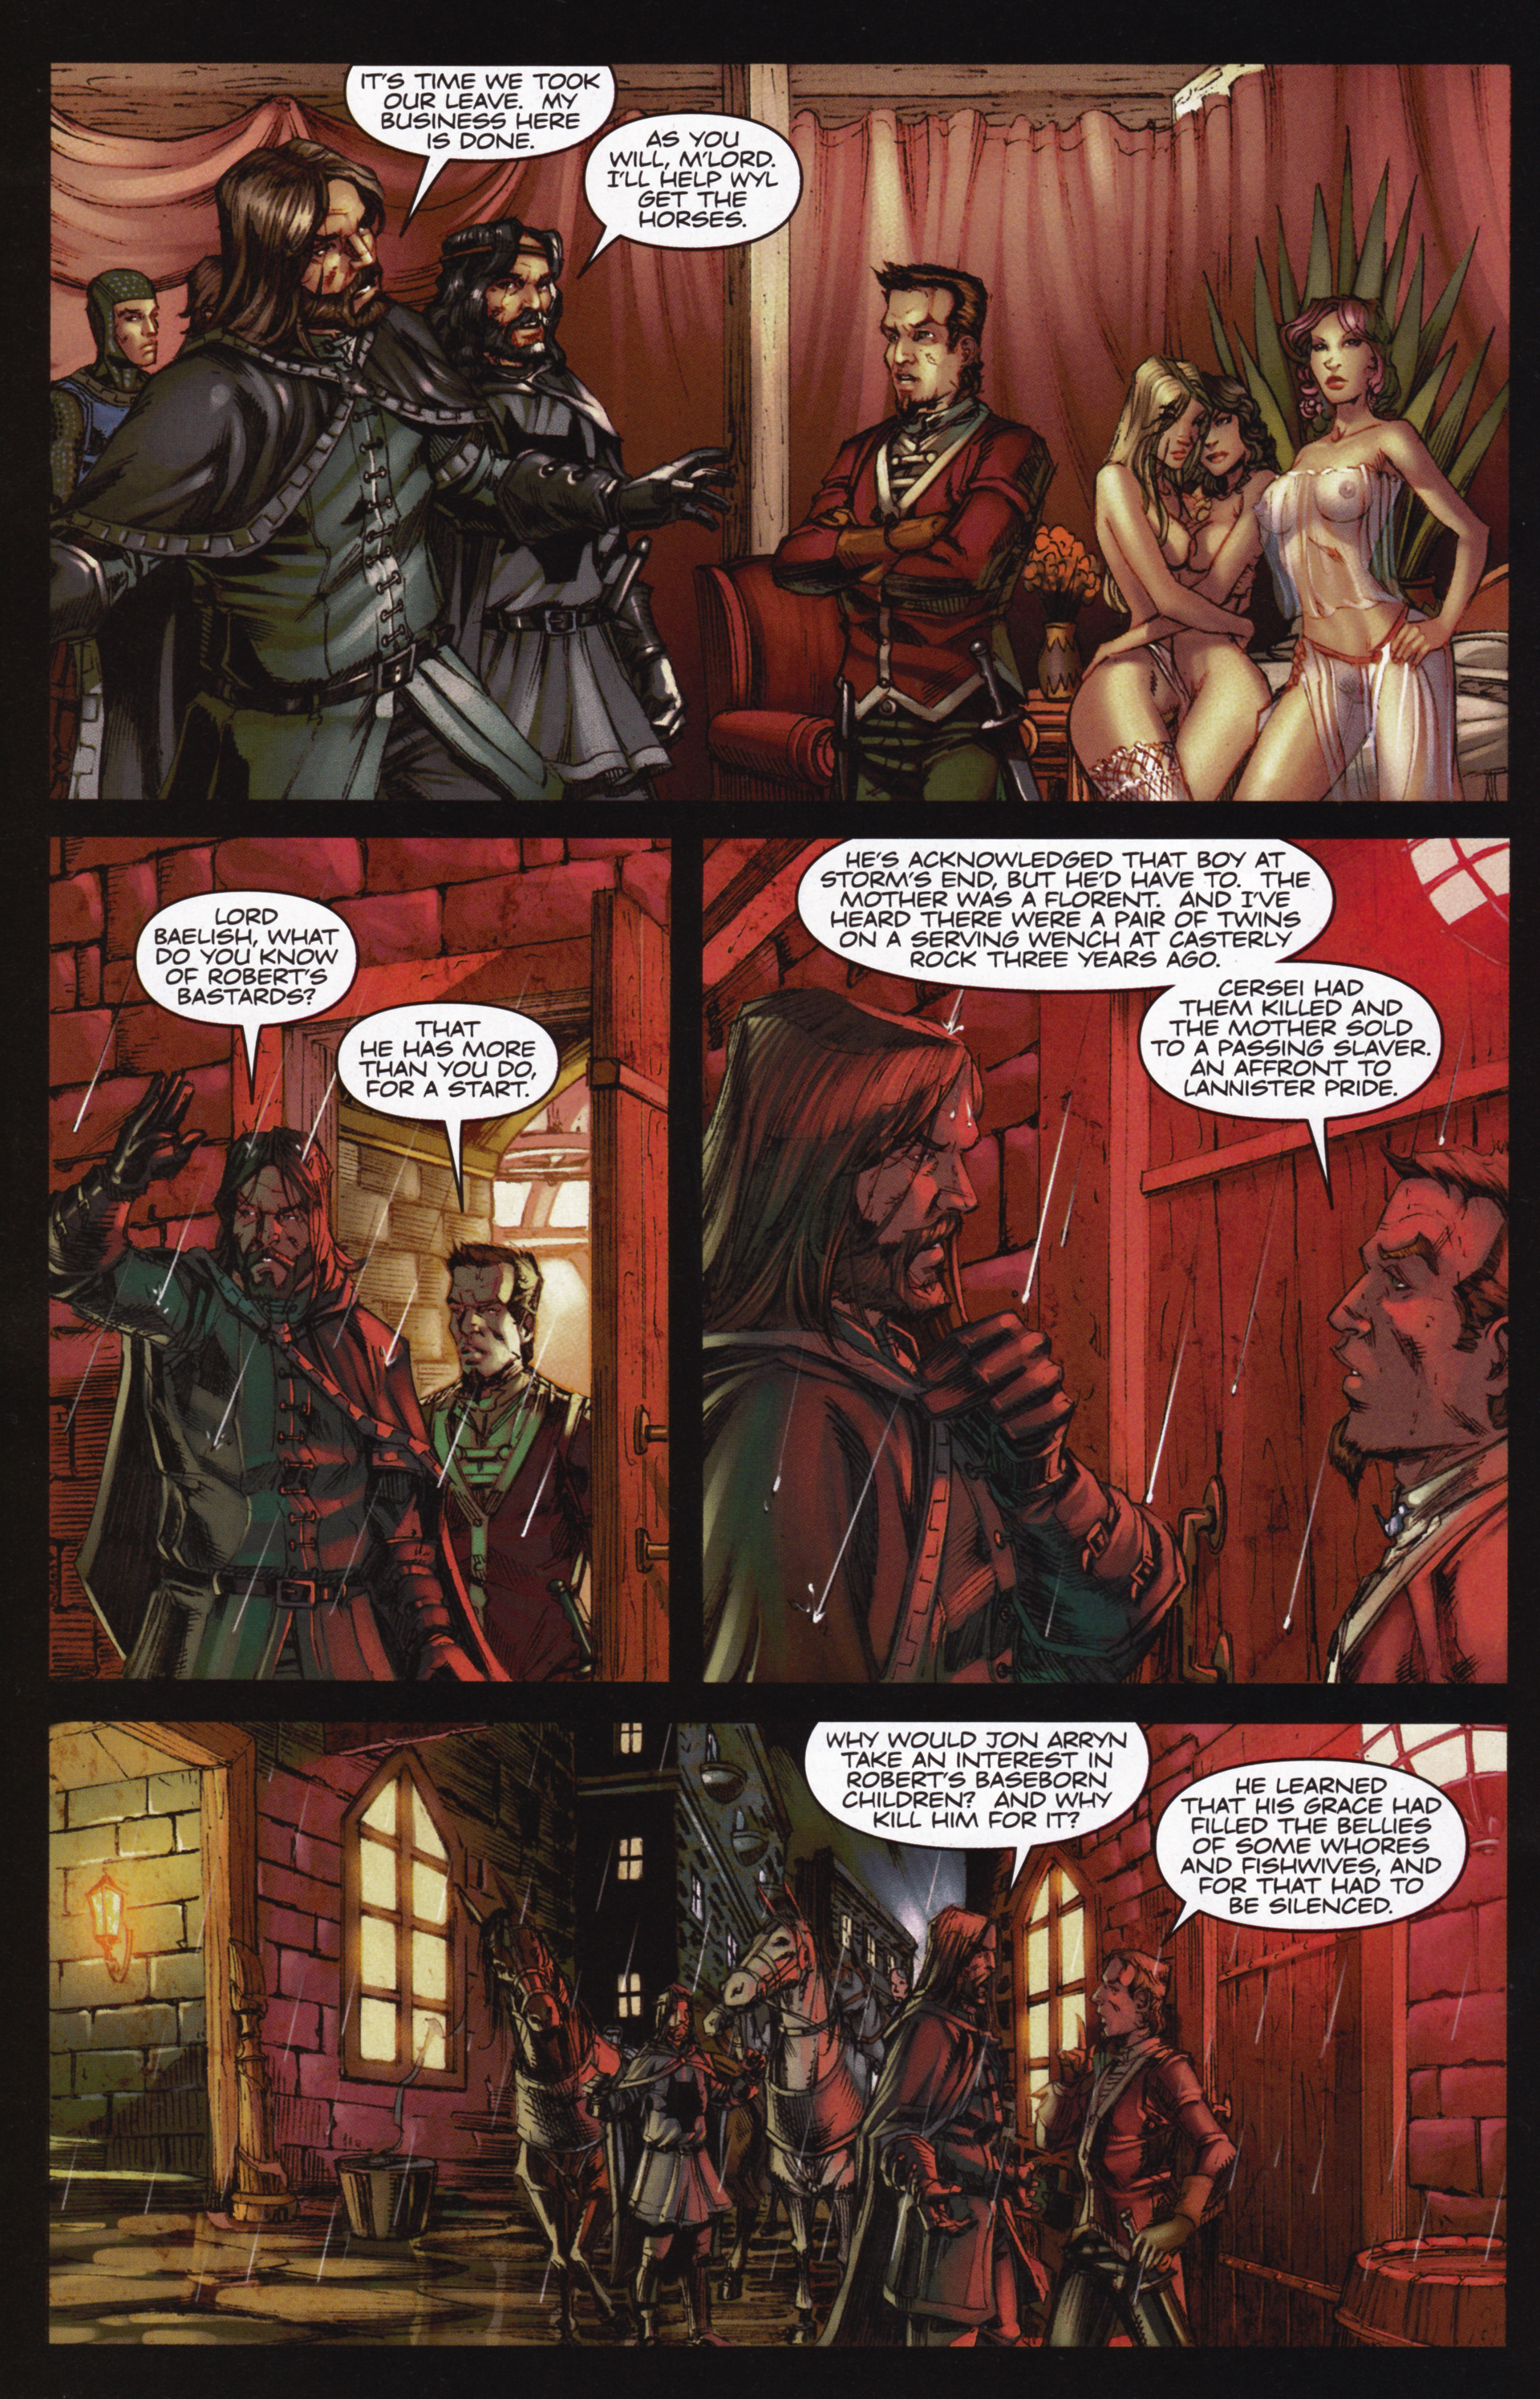 Read online A Game Of Thrones comic -  Issue #12 - 26